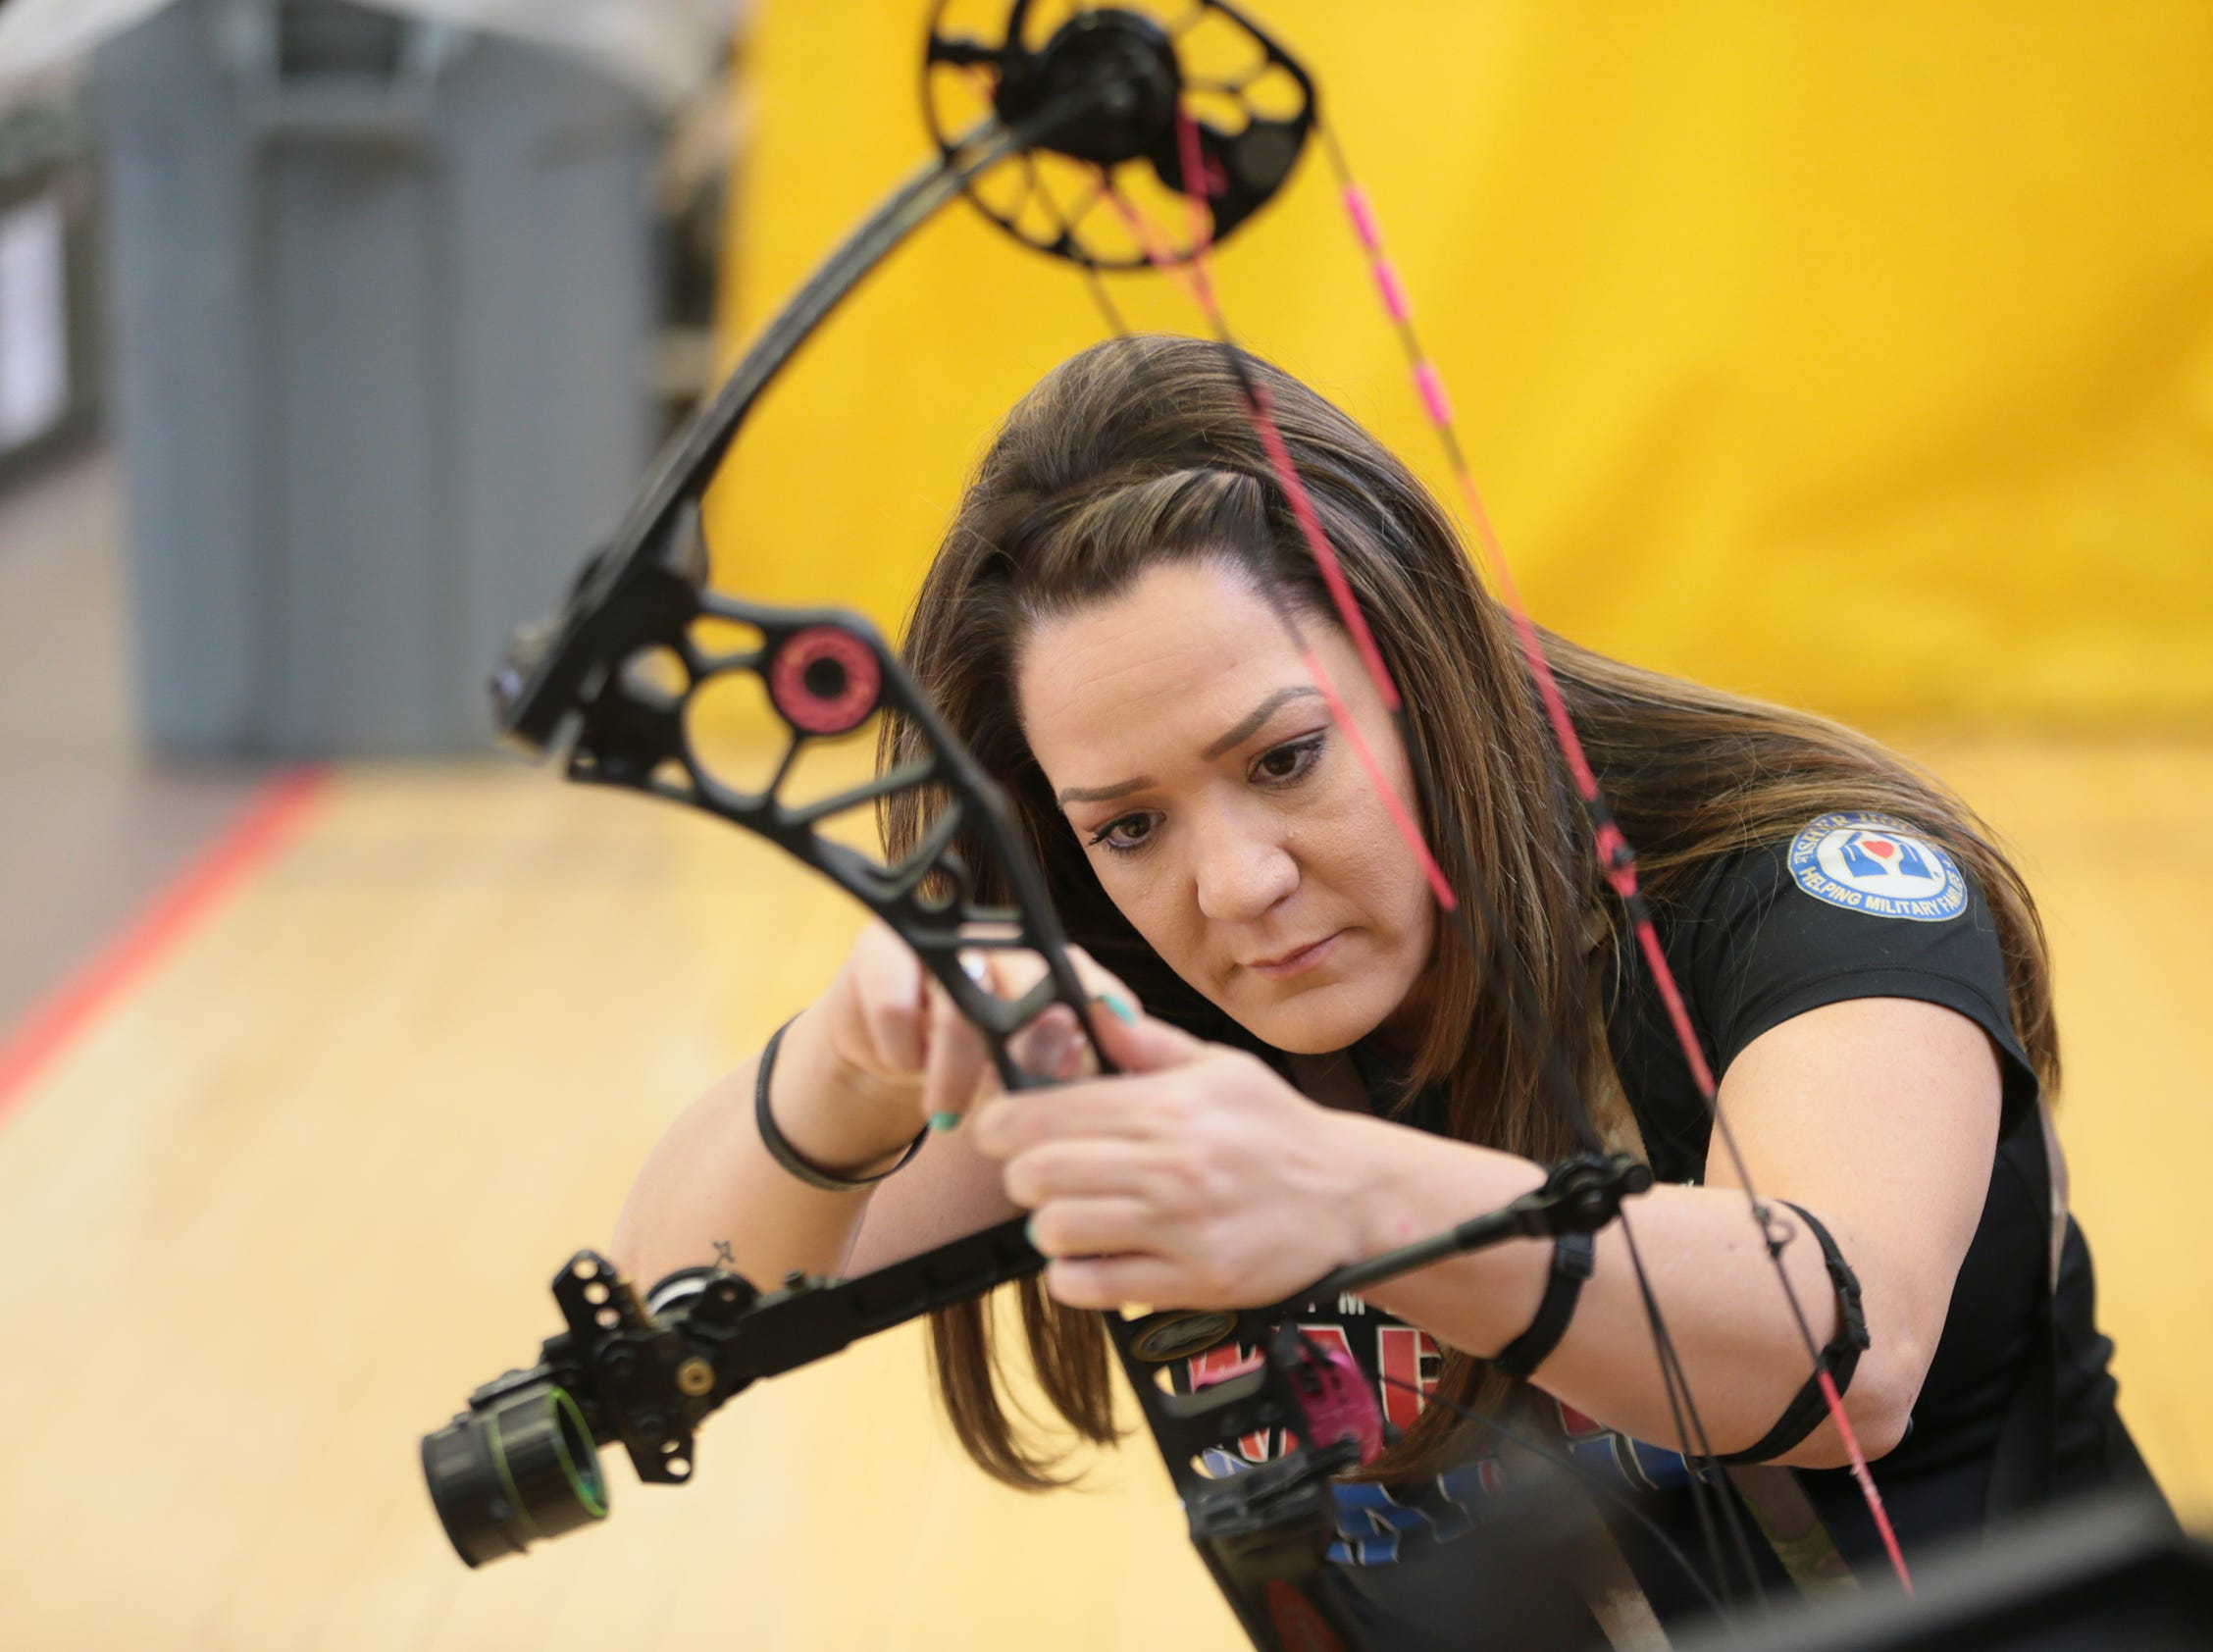 An athlete prepares her bow as soldiers from across the Army were at Fort Bliss on Friday, March 8, 2019, competing at the U.S. Army Warrior Trials in a bid to represent the Army at the Department of Defense Warrior Games in Tampa, Fla., in the summer. The competition is open to active duty, veterans, Reserve and National Guard members.